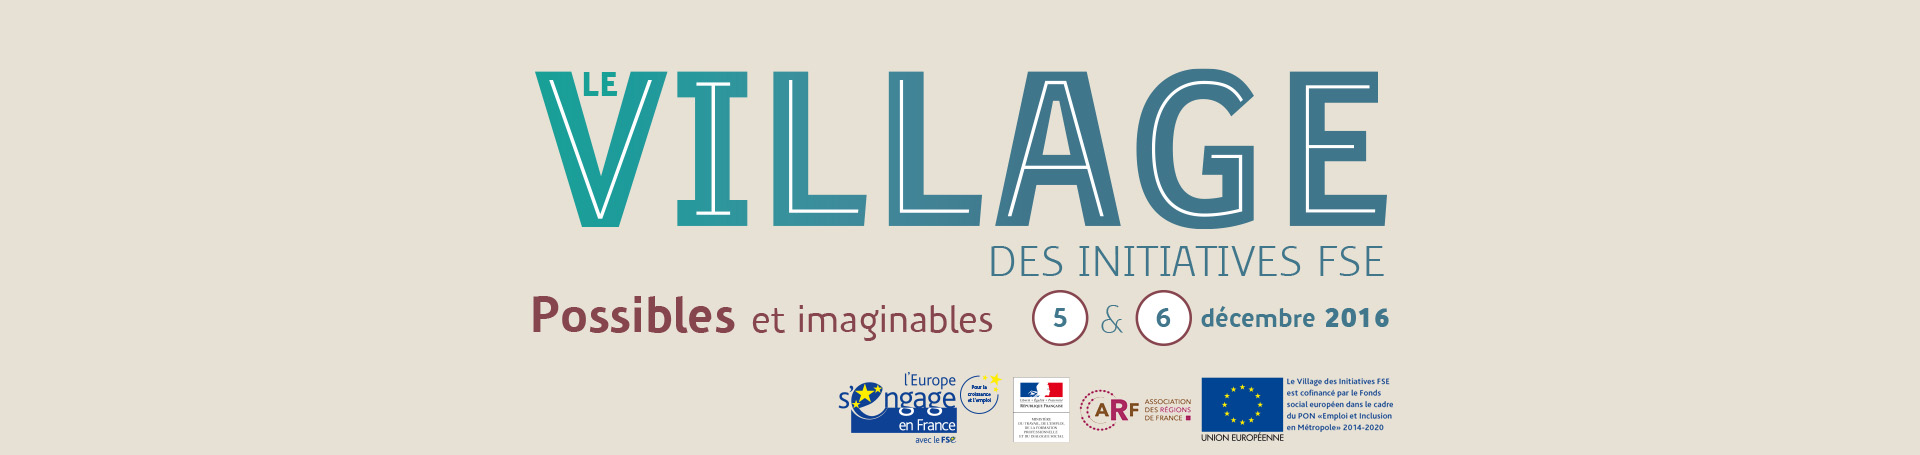 Le village des initiatives FSE